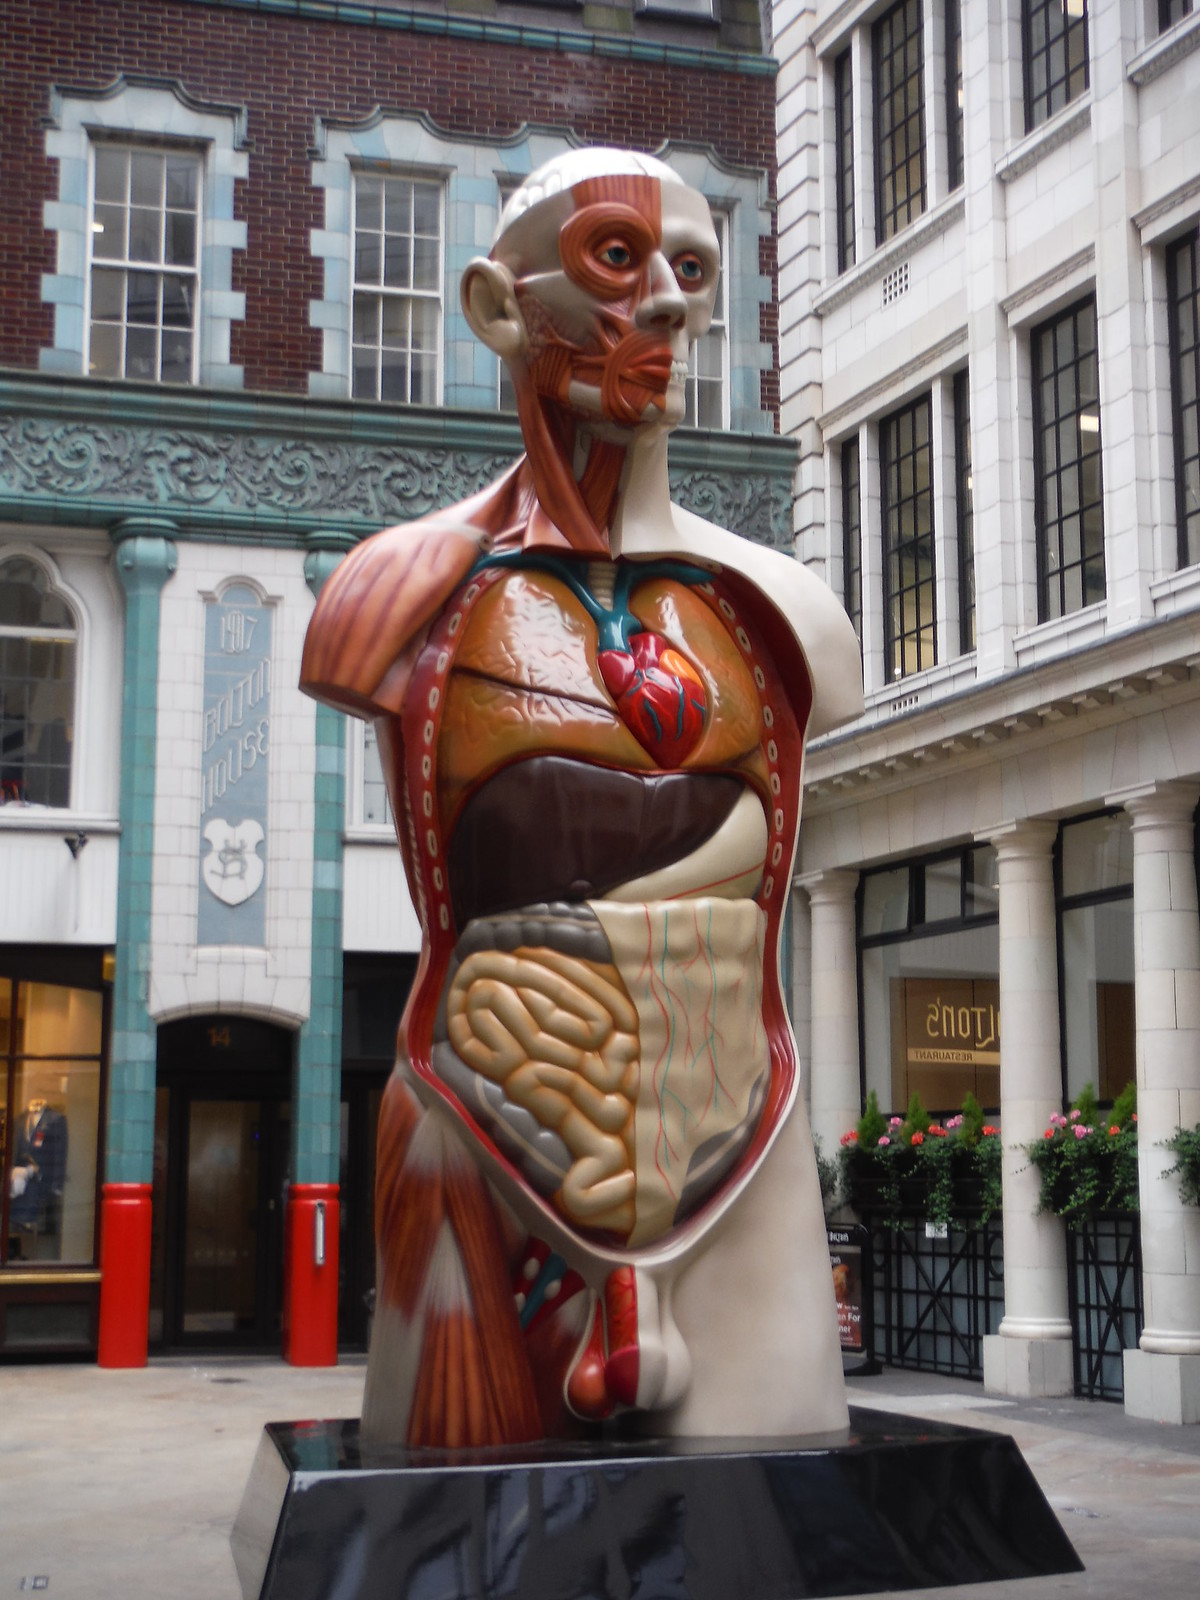 Damien Hirst - Temple SWC Walk Short 24 - Sculpture in the City